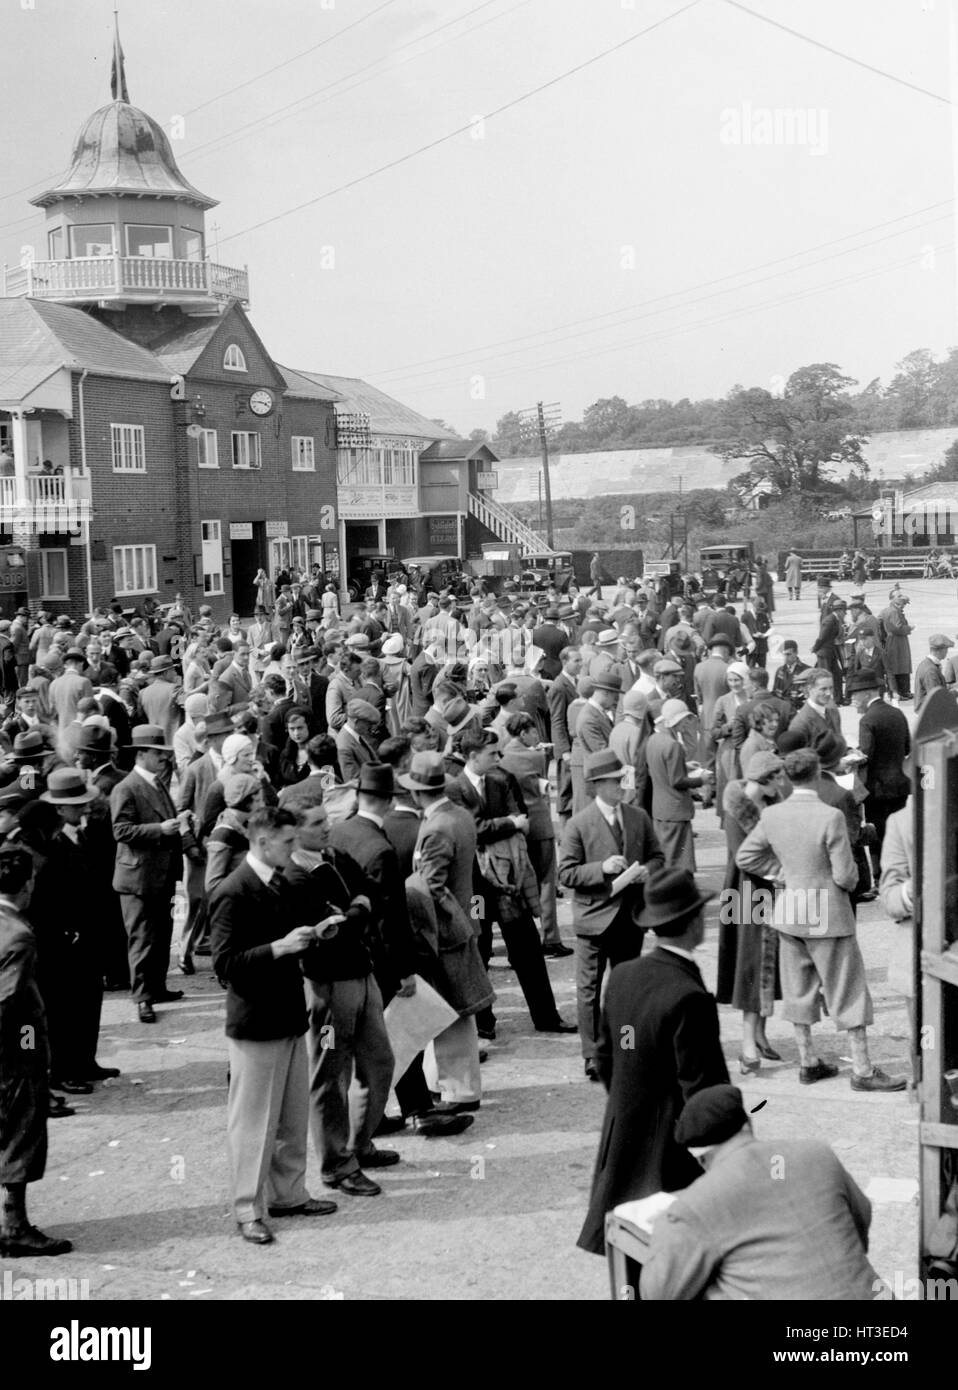 People attending a motor racing event at Brooklands. Artist: Bill Brunell. - Stock Image